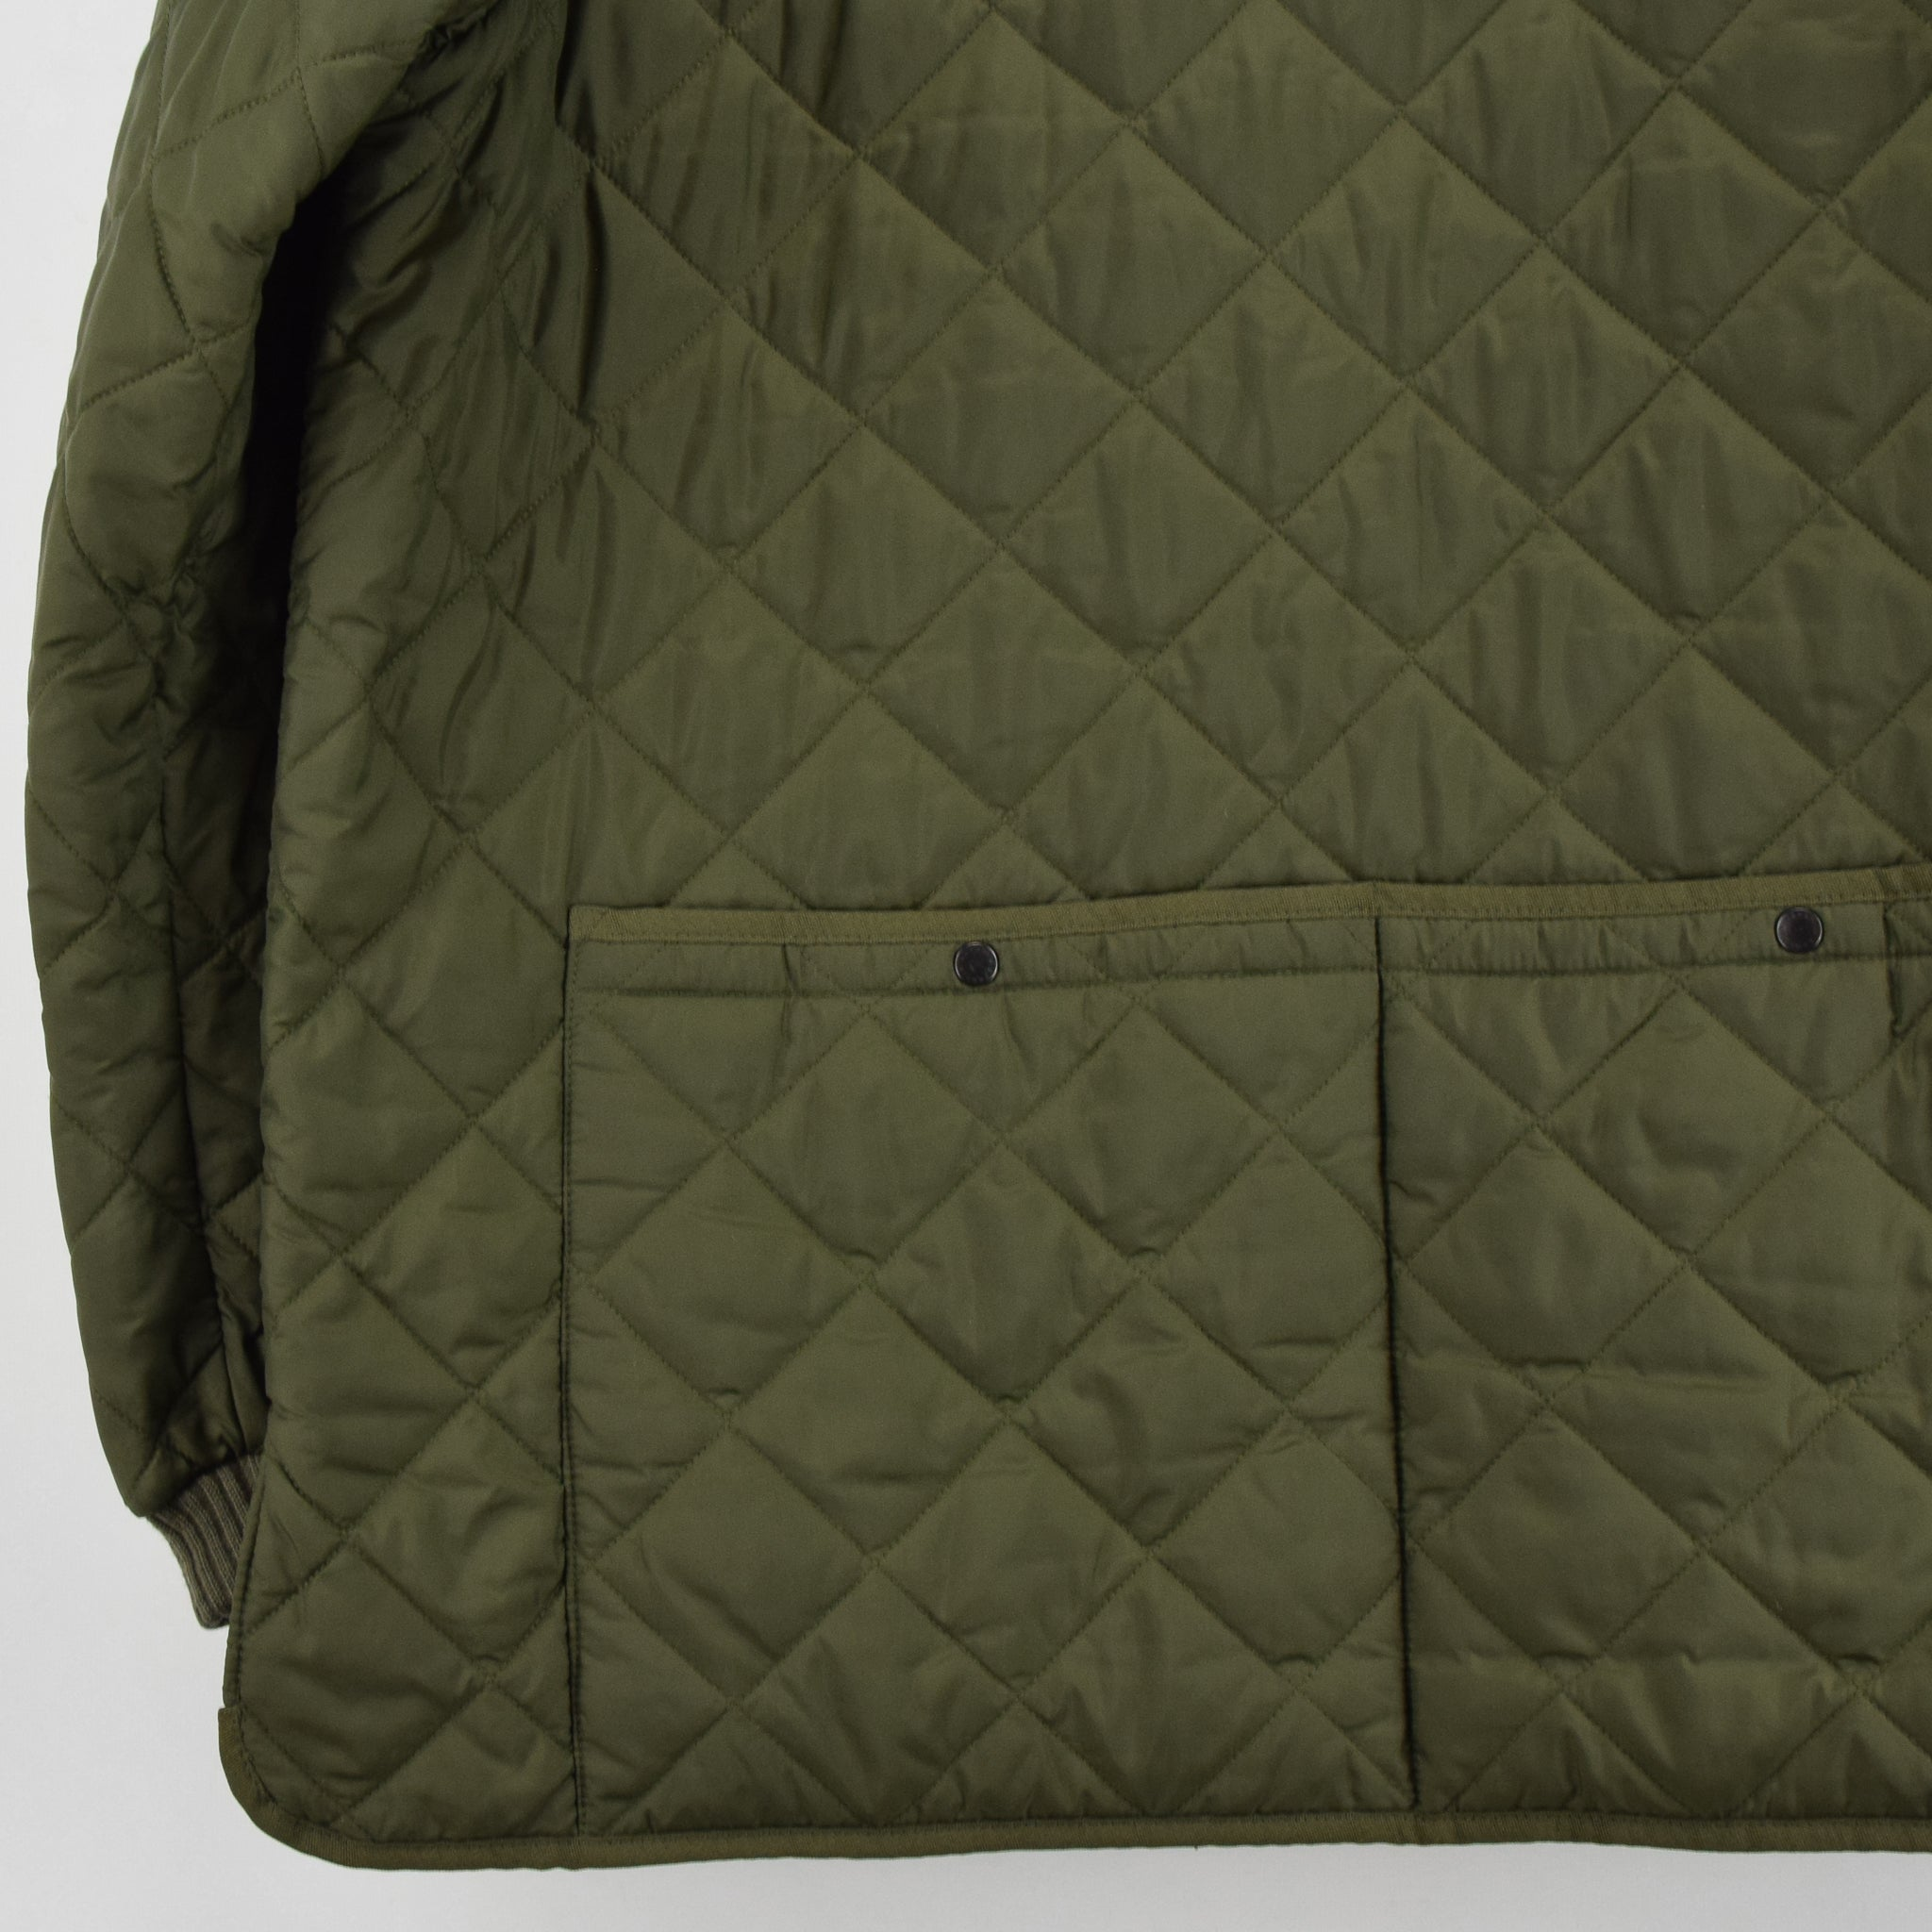 Barbour New Keeperwear Hunting Green Quilted Shooting Jacket Suede Patches M back hem